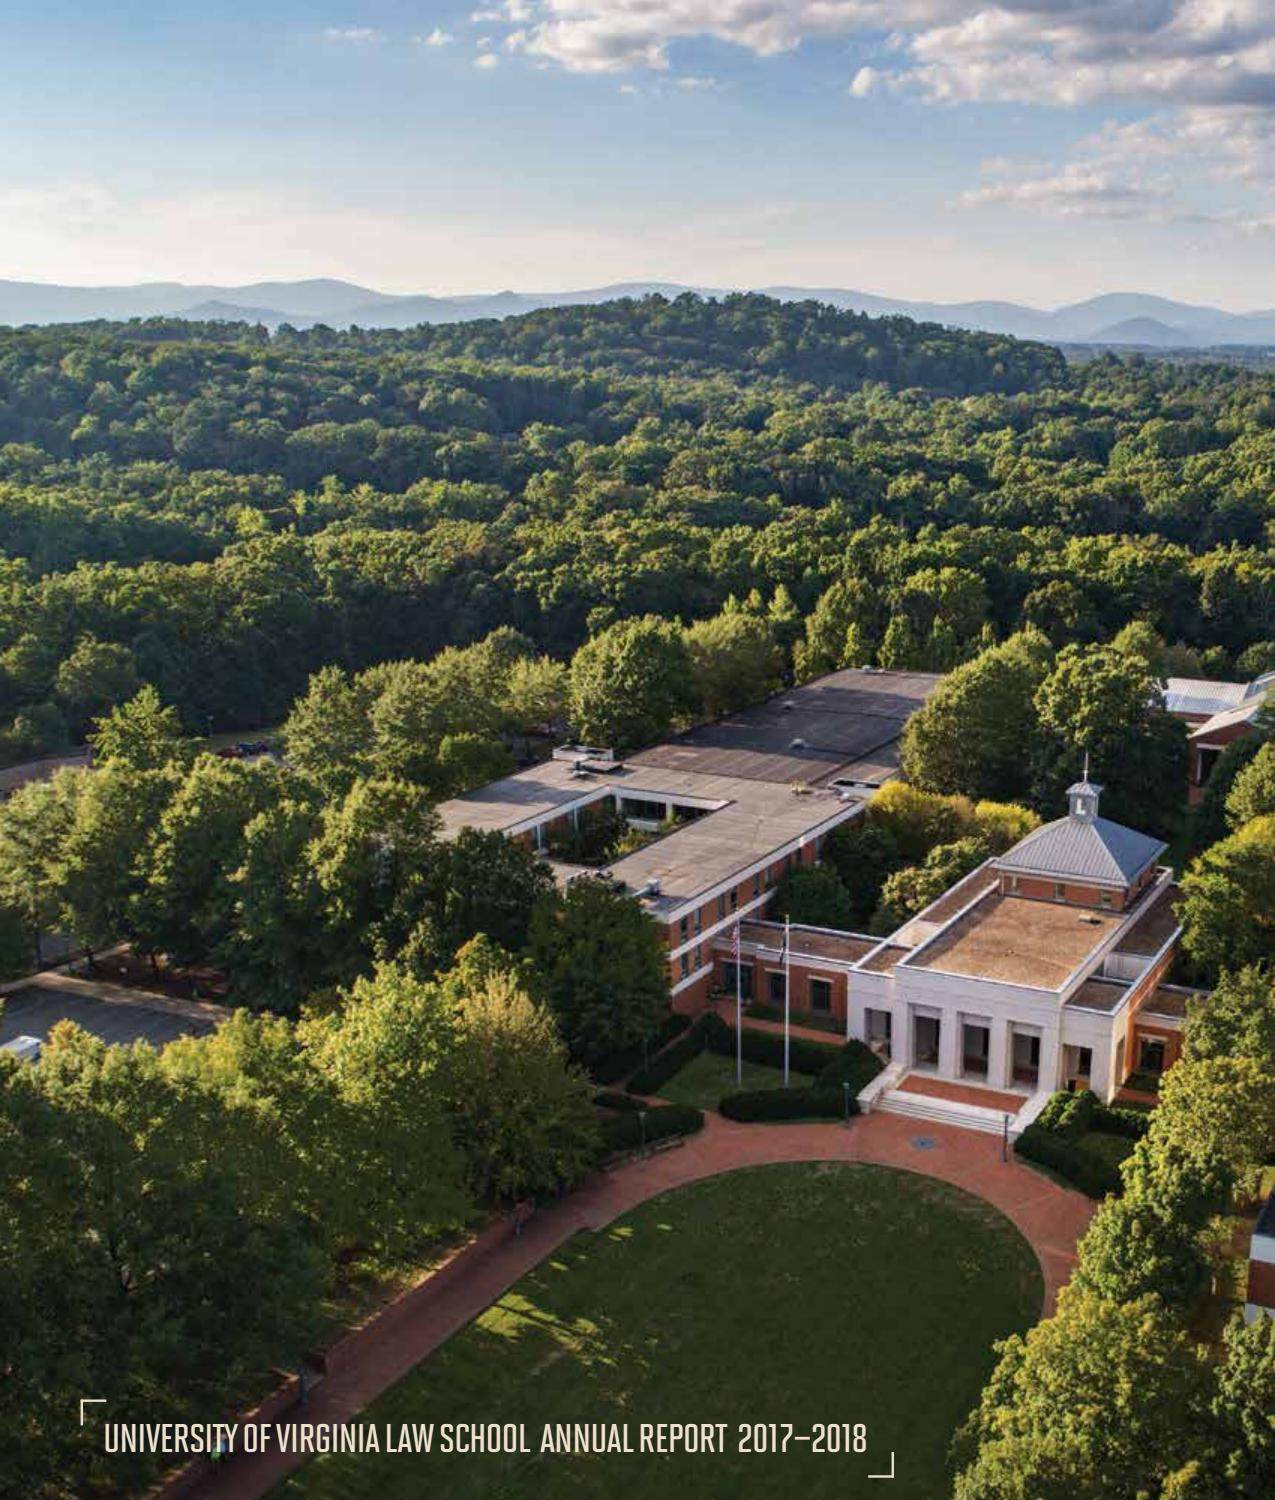 UVA Law Annual Report 2017-18 by University of Virginia